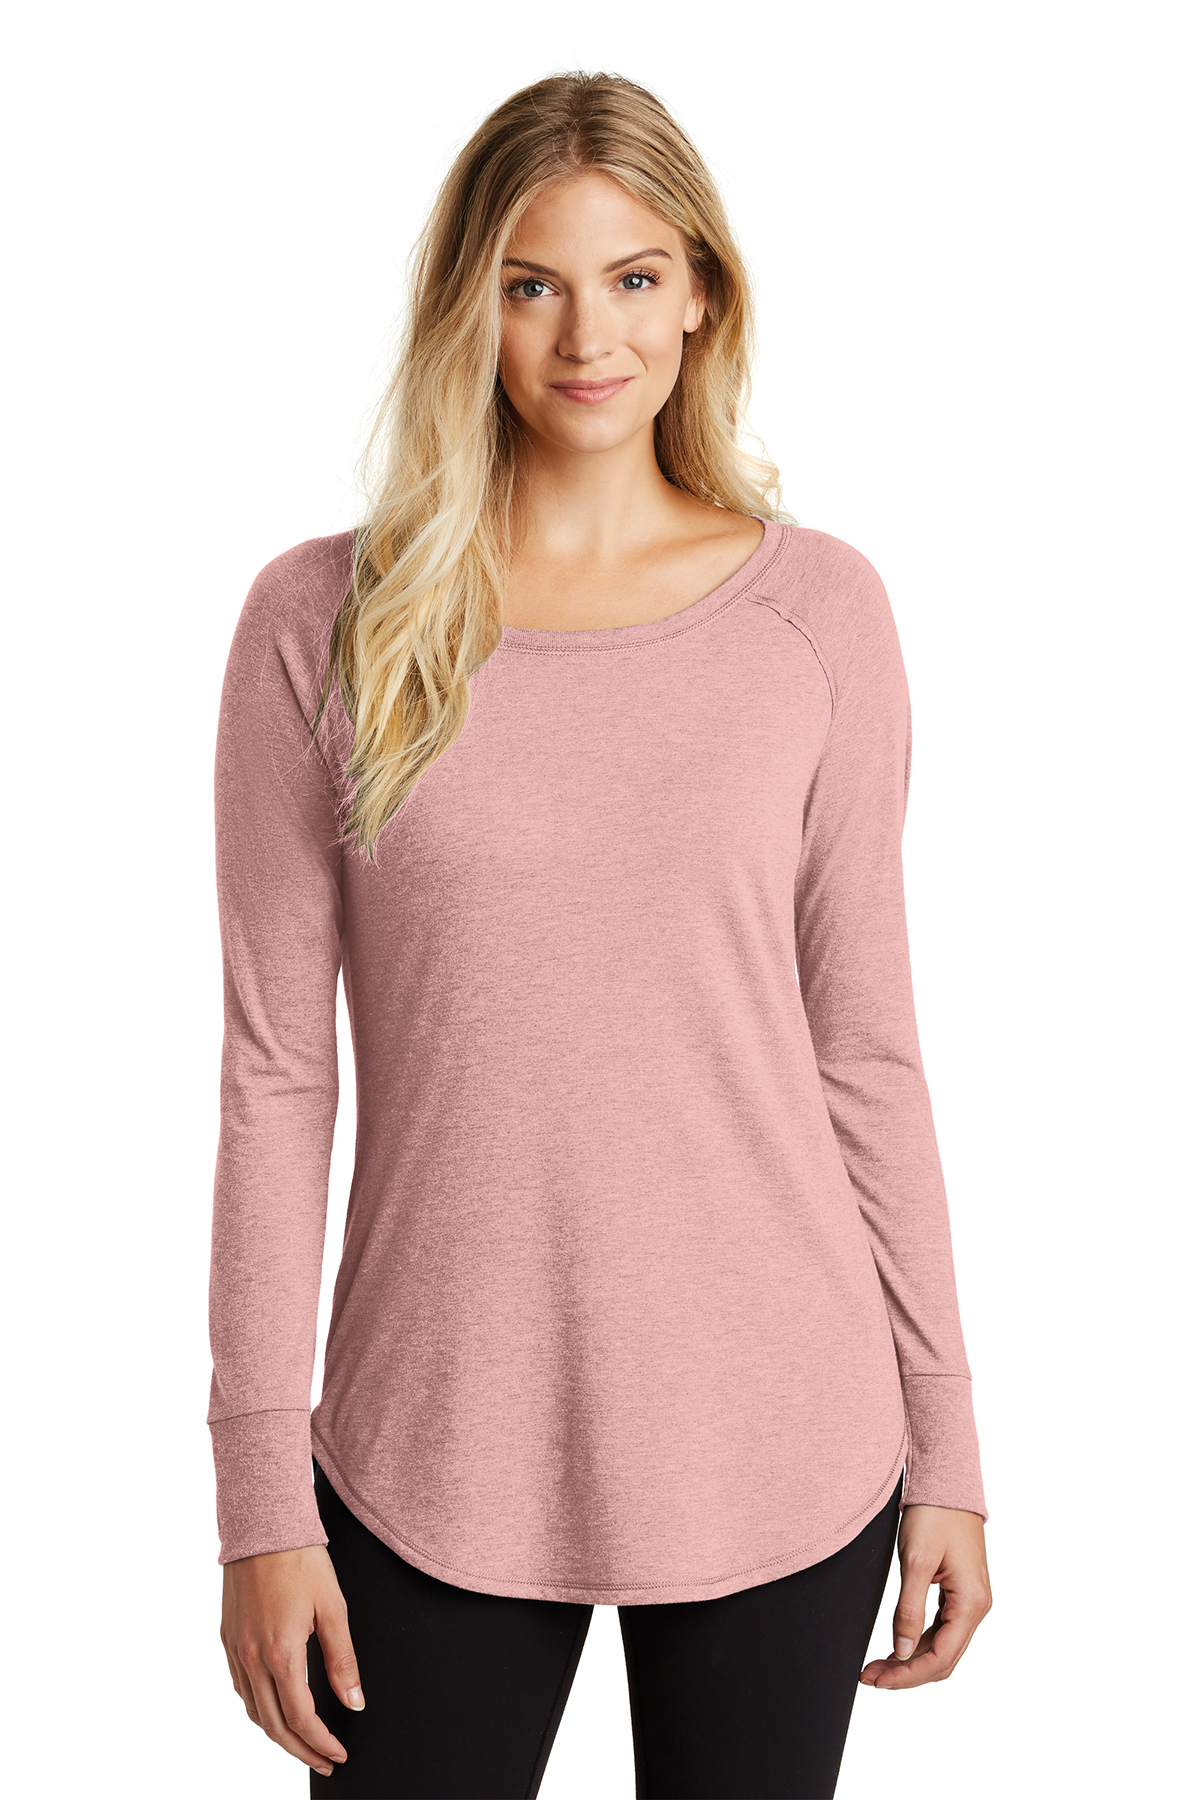 District Made DT132L - Ladies Perfect Tri Long Sleeve Tunic